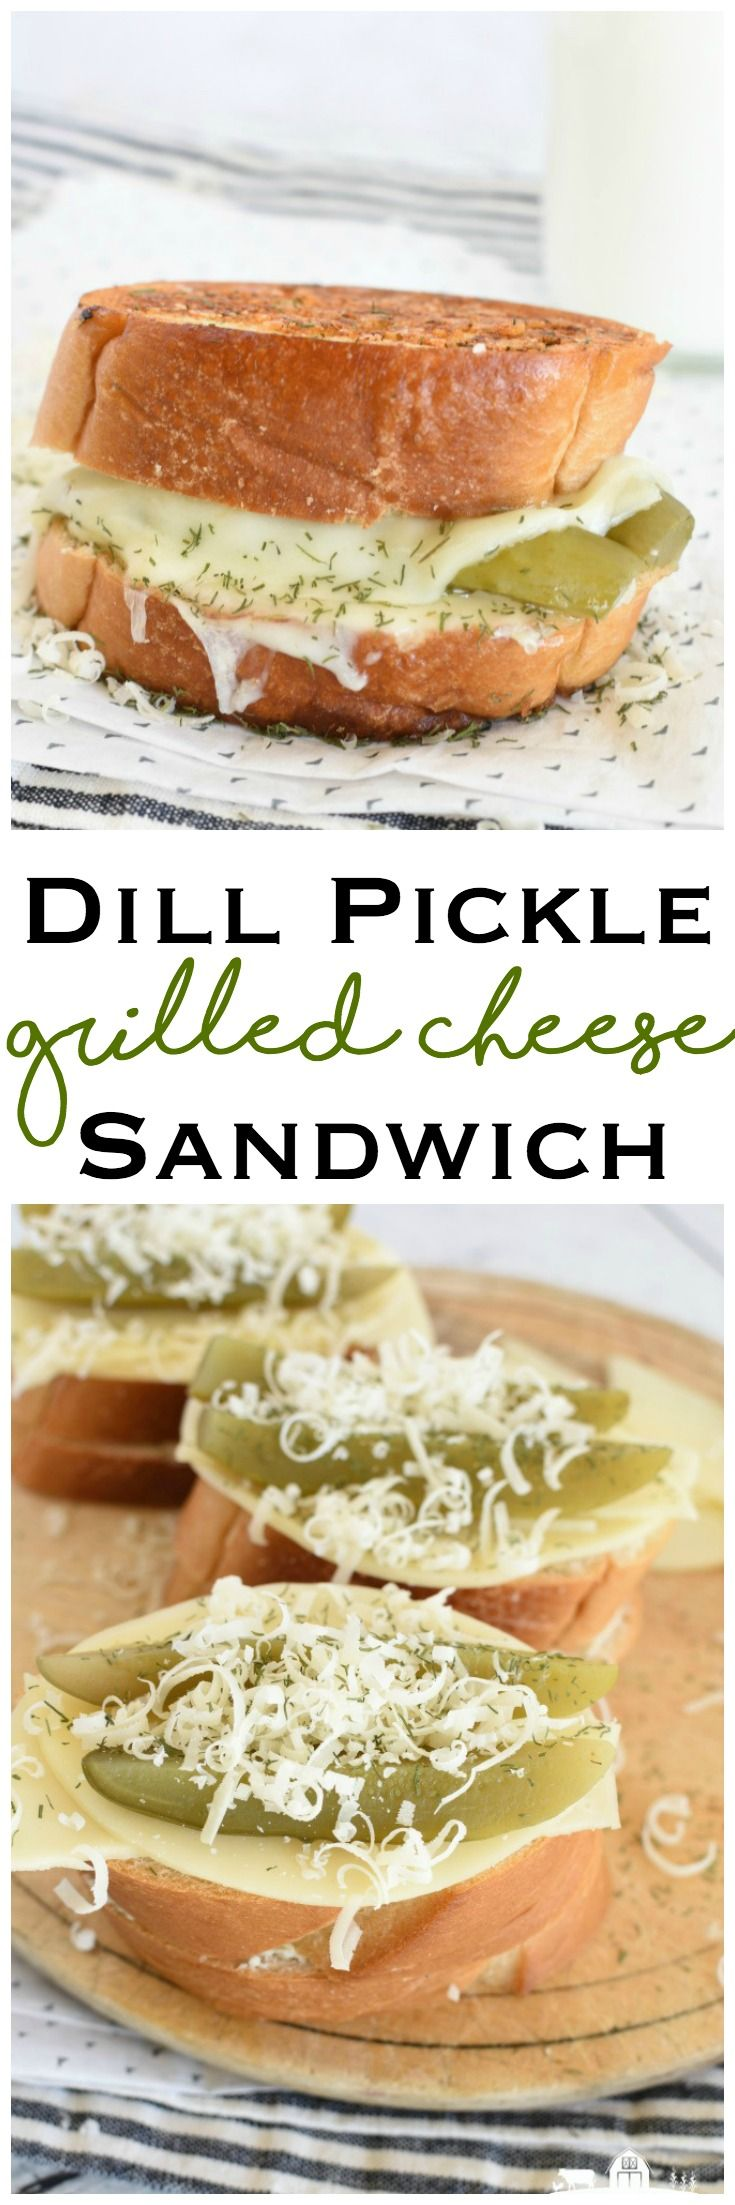 Dill Pickle Grilled Cheese Sandwich Recipe Little